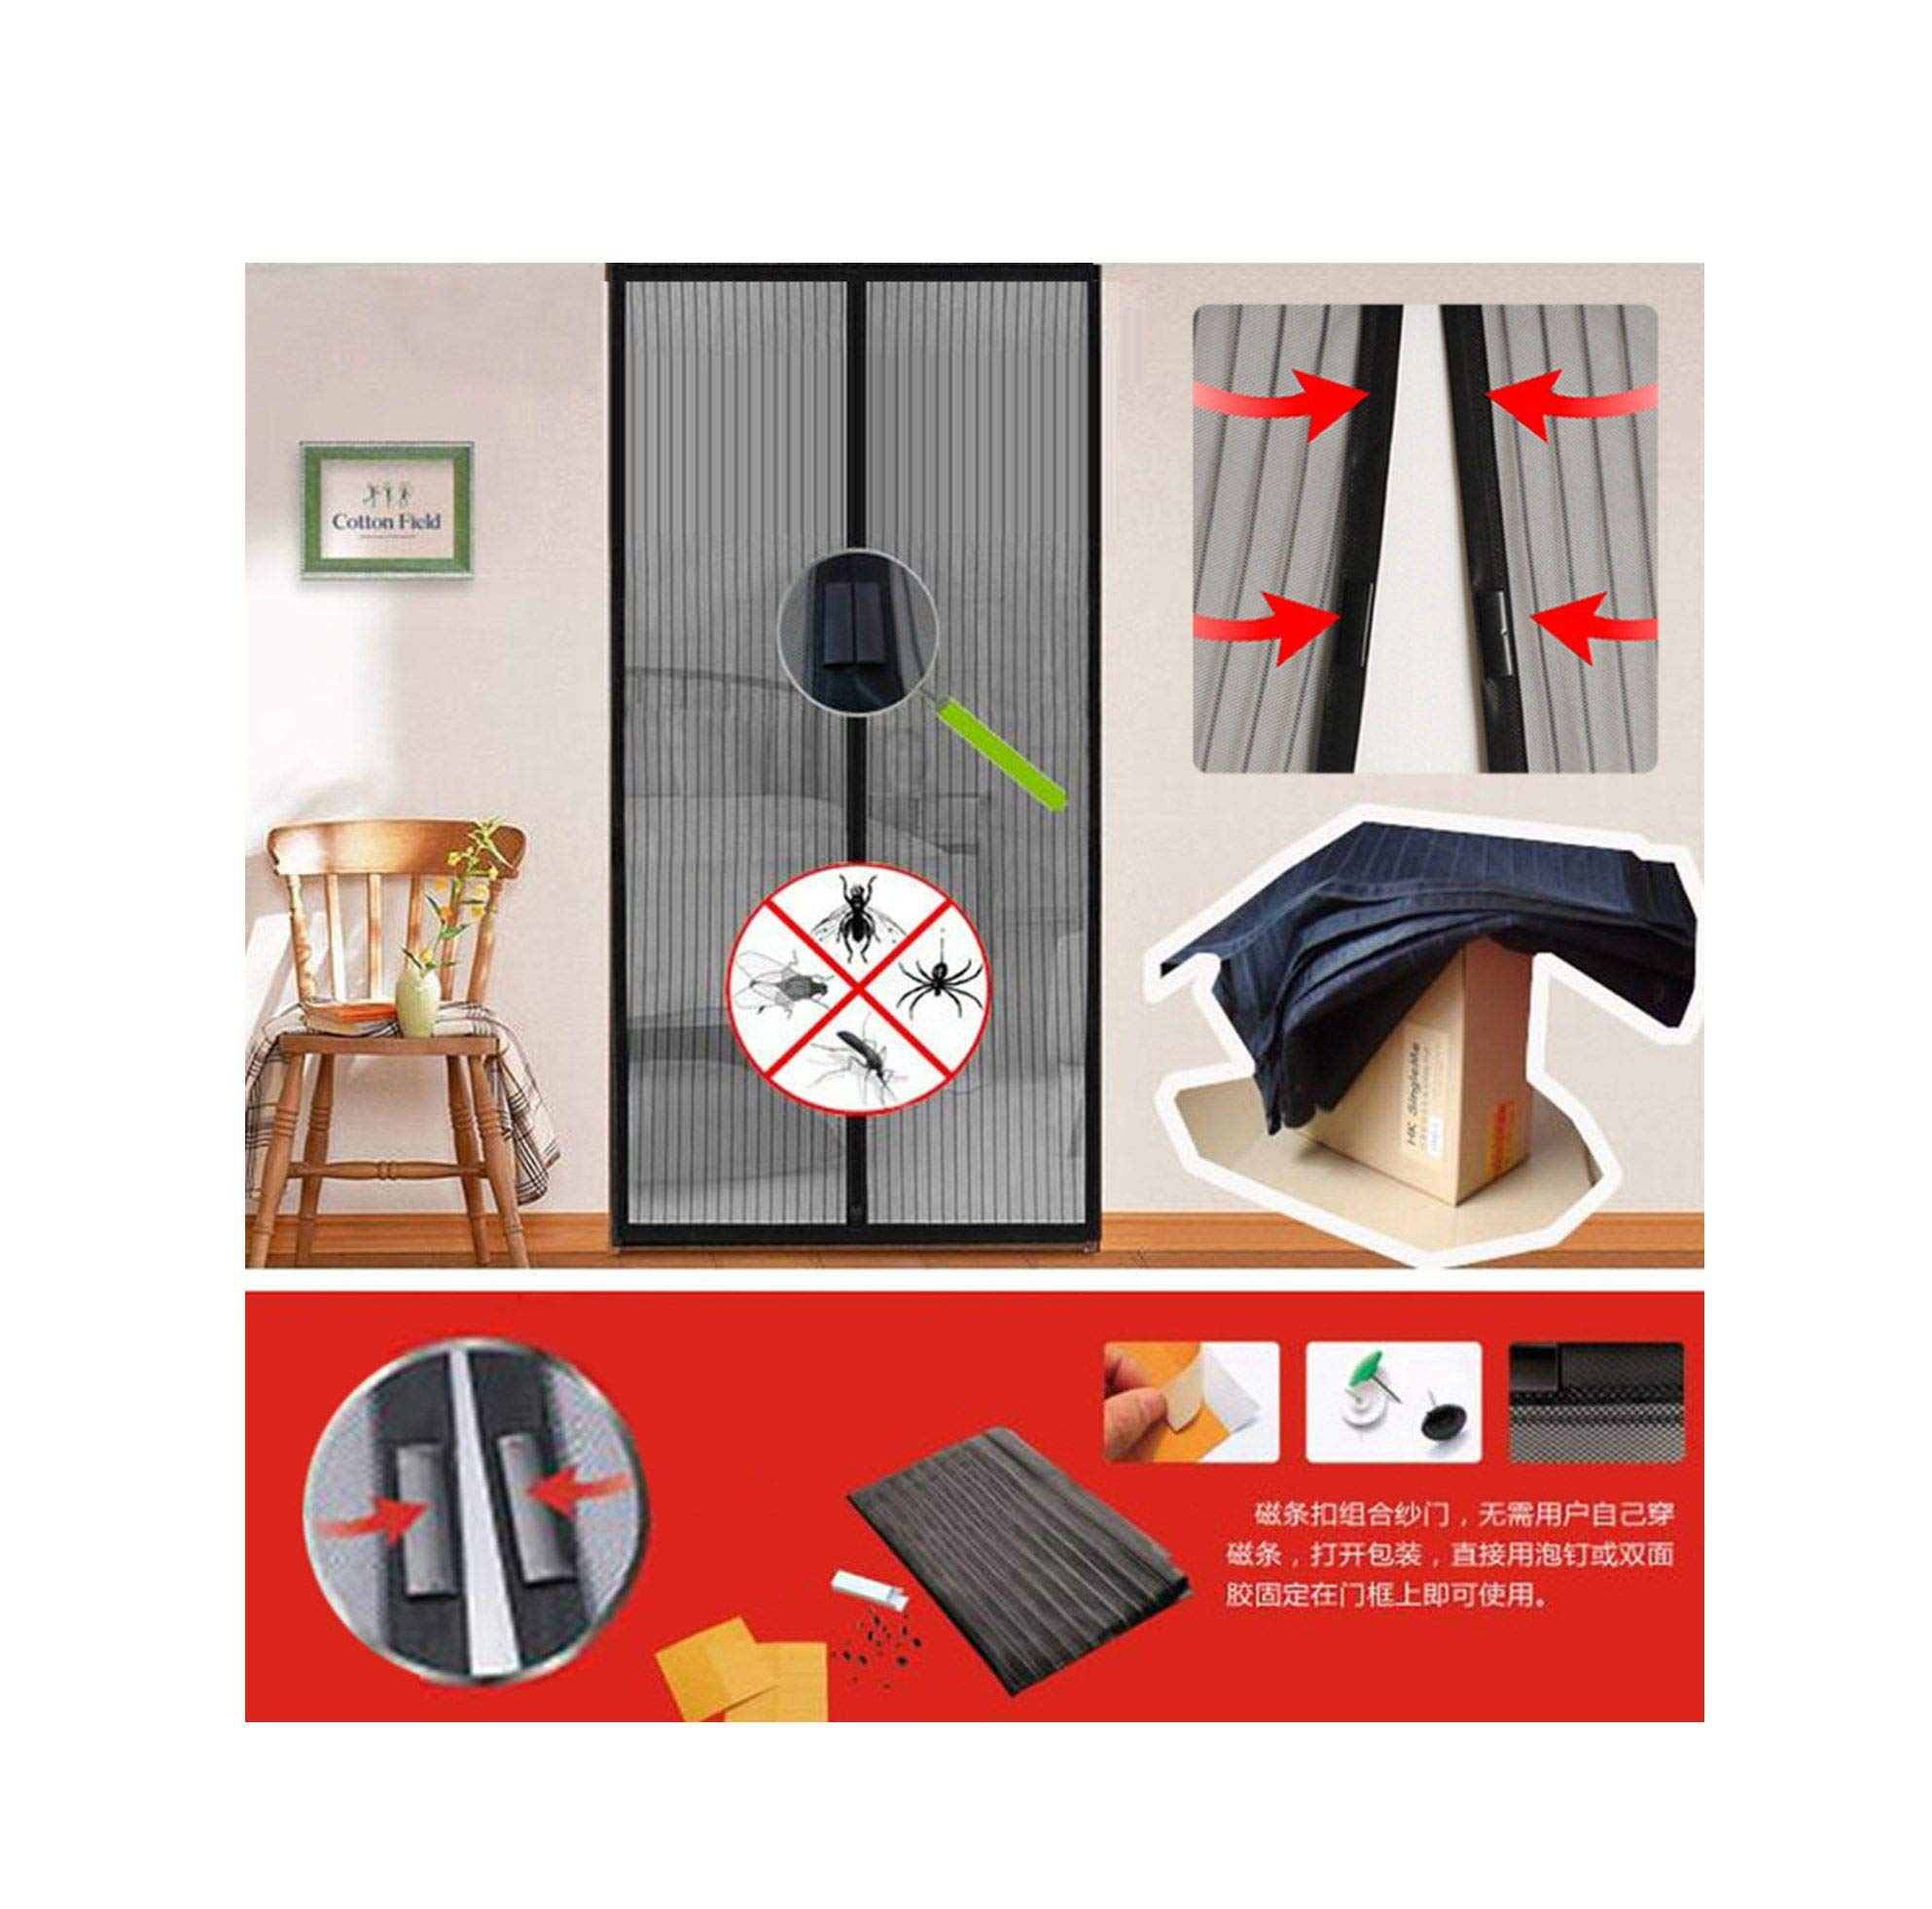 FAT BABY 1PC Mosquito Net Curtain Magnets Door Mesh Insect Sandfly Netting with Magnets on The Door Mesh Screen Magnets 5 Sizes,80x210cm